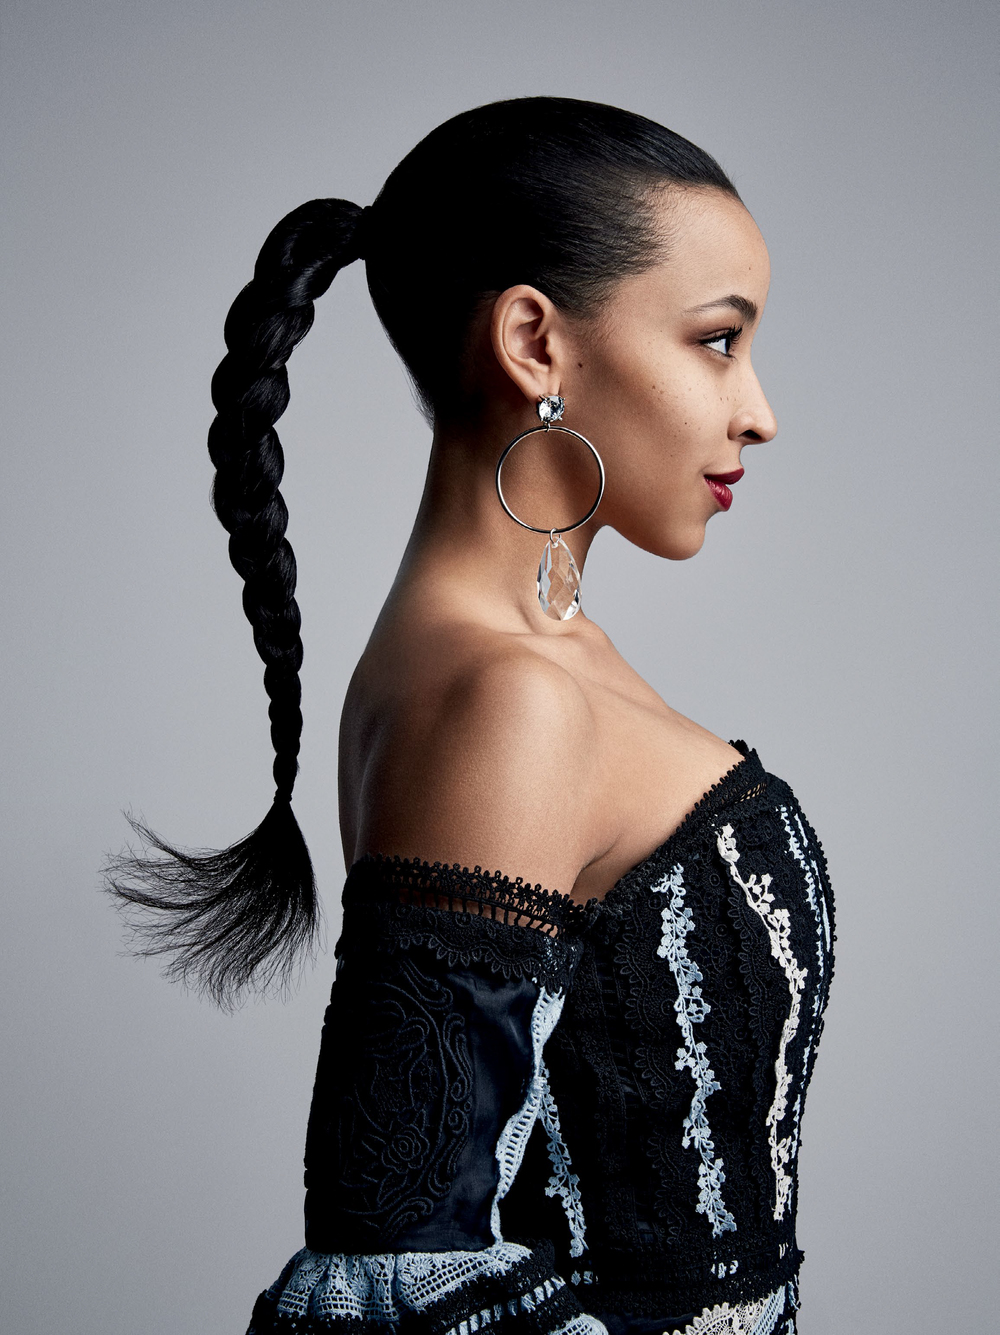 Vogue_US-May_2016-06-Tinashe-by-Patrick_Demarchelier.jpg